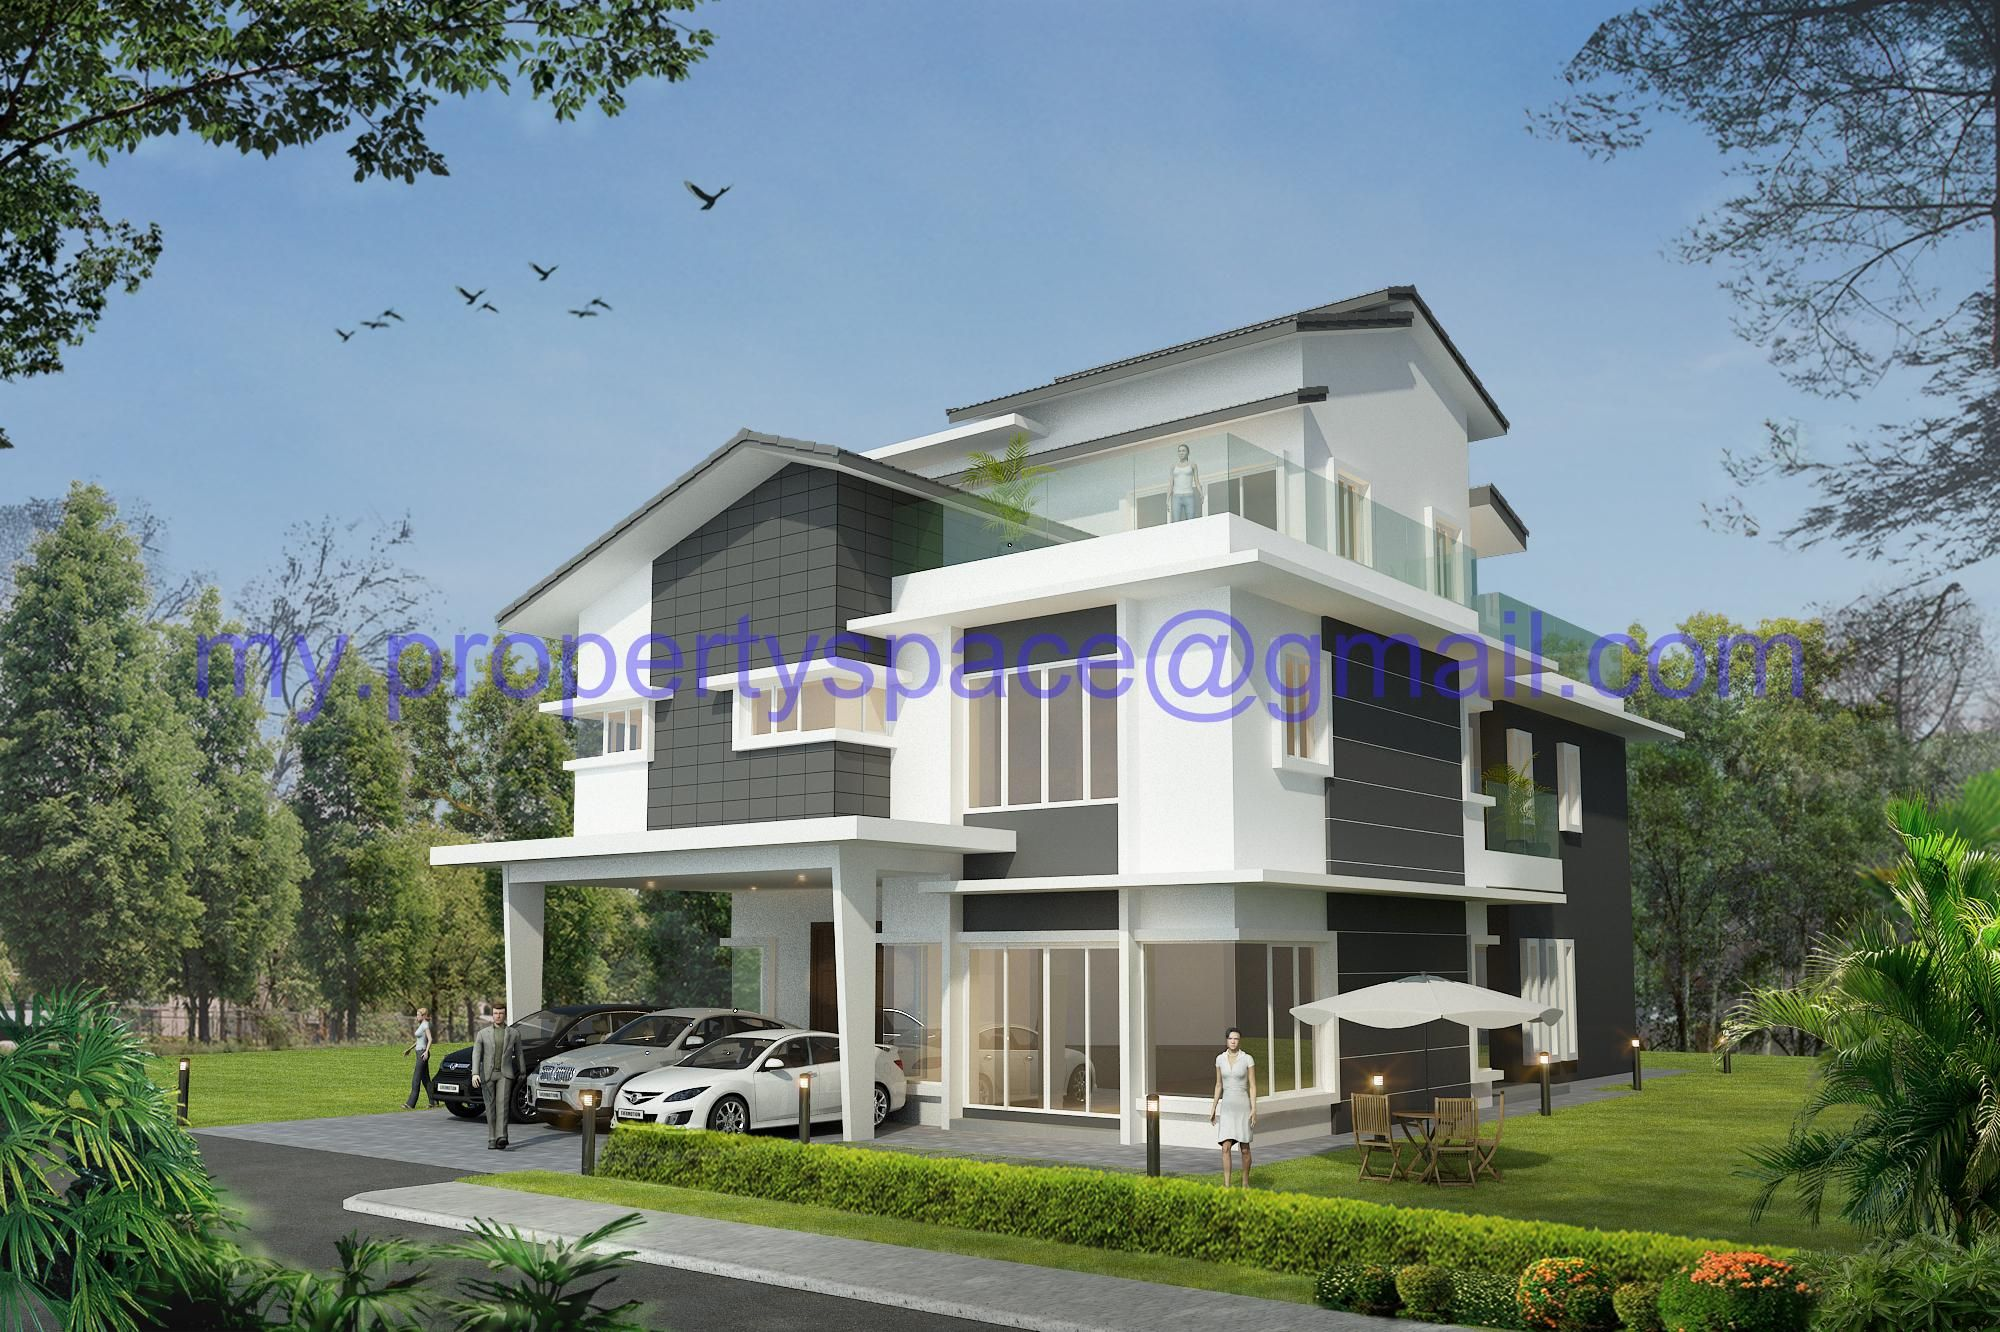 Modern Bungalow House Design Malaysia Contemporary Bungalow House Plans Best Bungalow Desig Modern Bungalow House Design Modern Bungalow House Bungalow Design